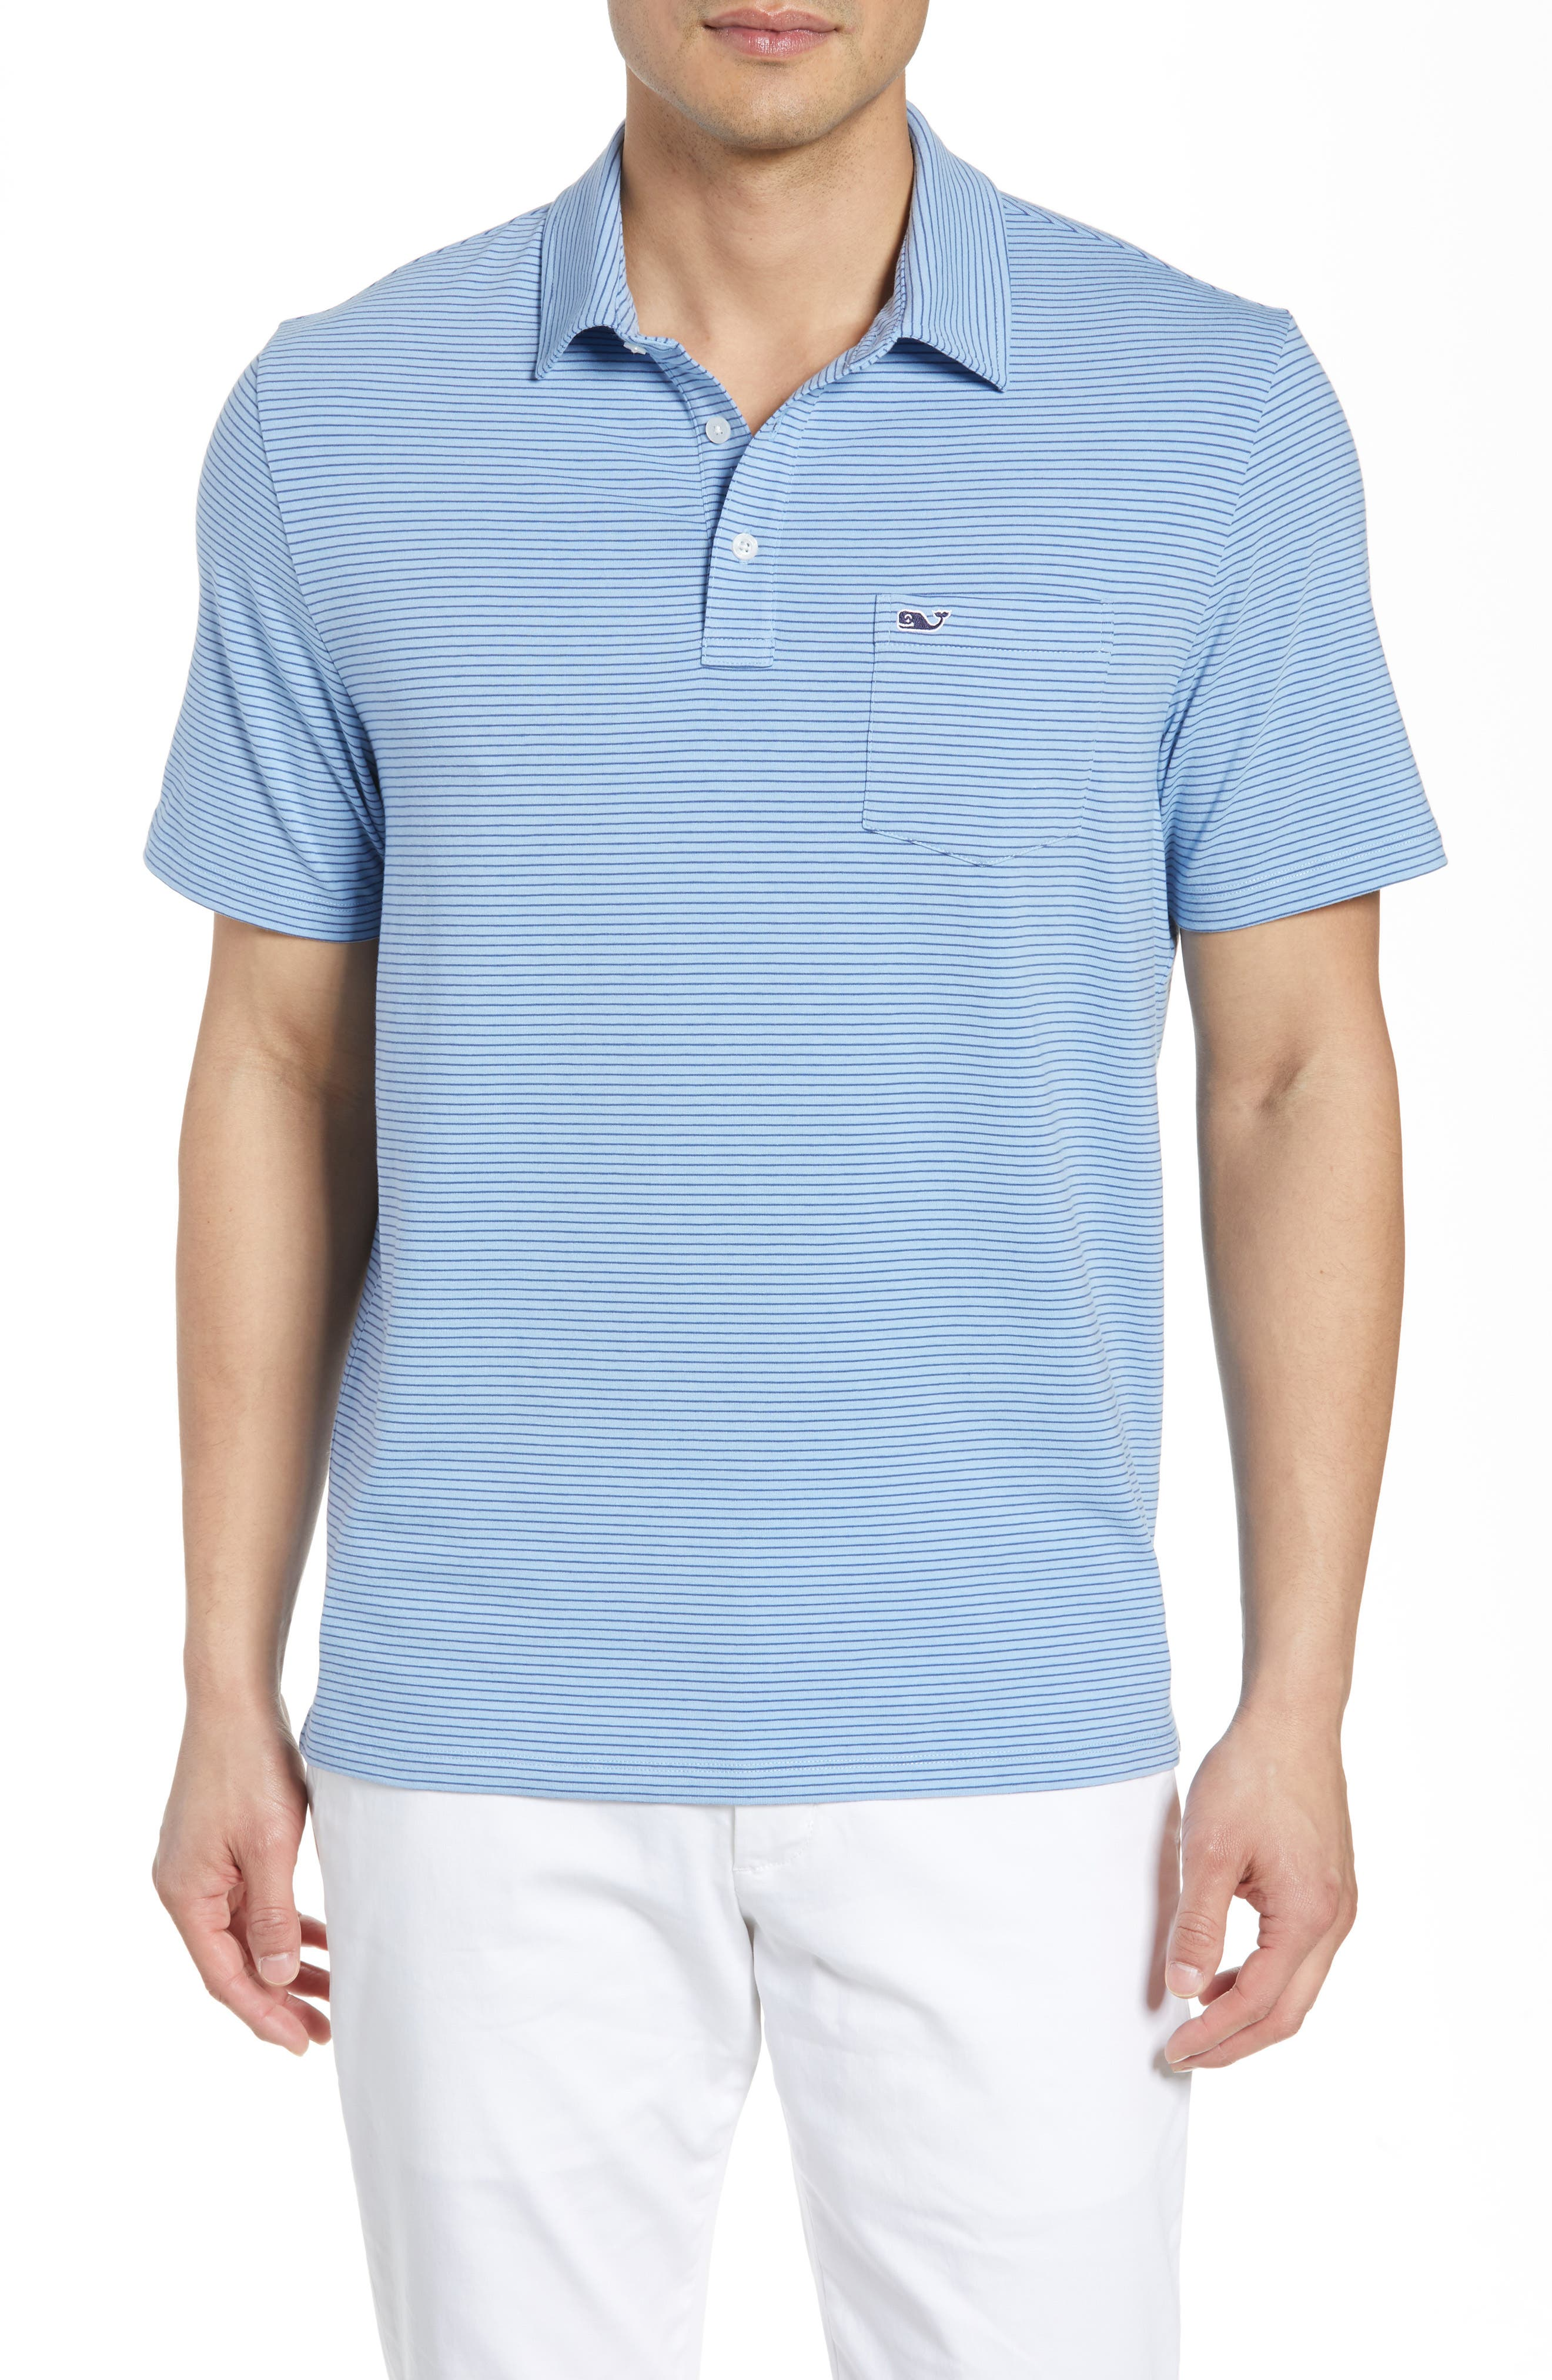 57c3a0da7 Men's Vineyard Vines Jersey Polo Shirts | Nordstrom